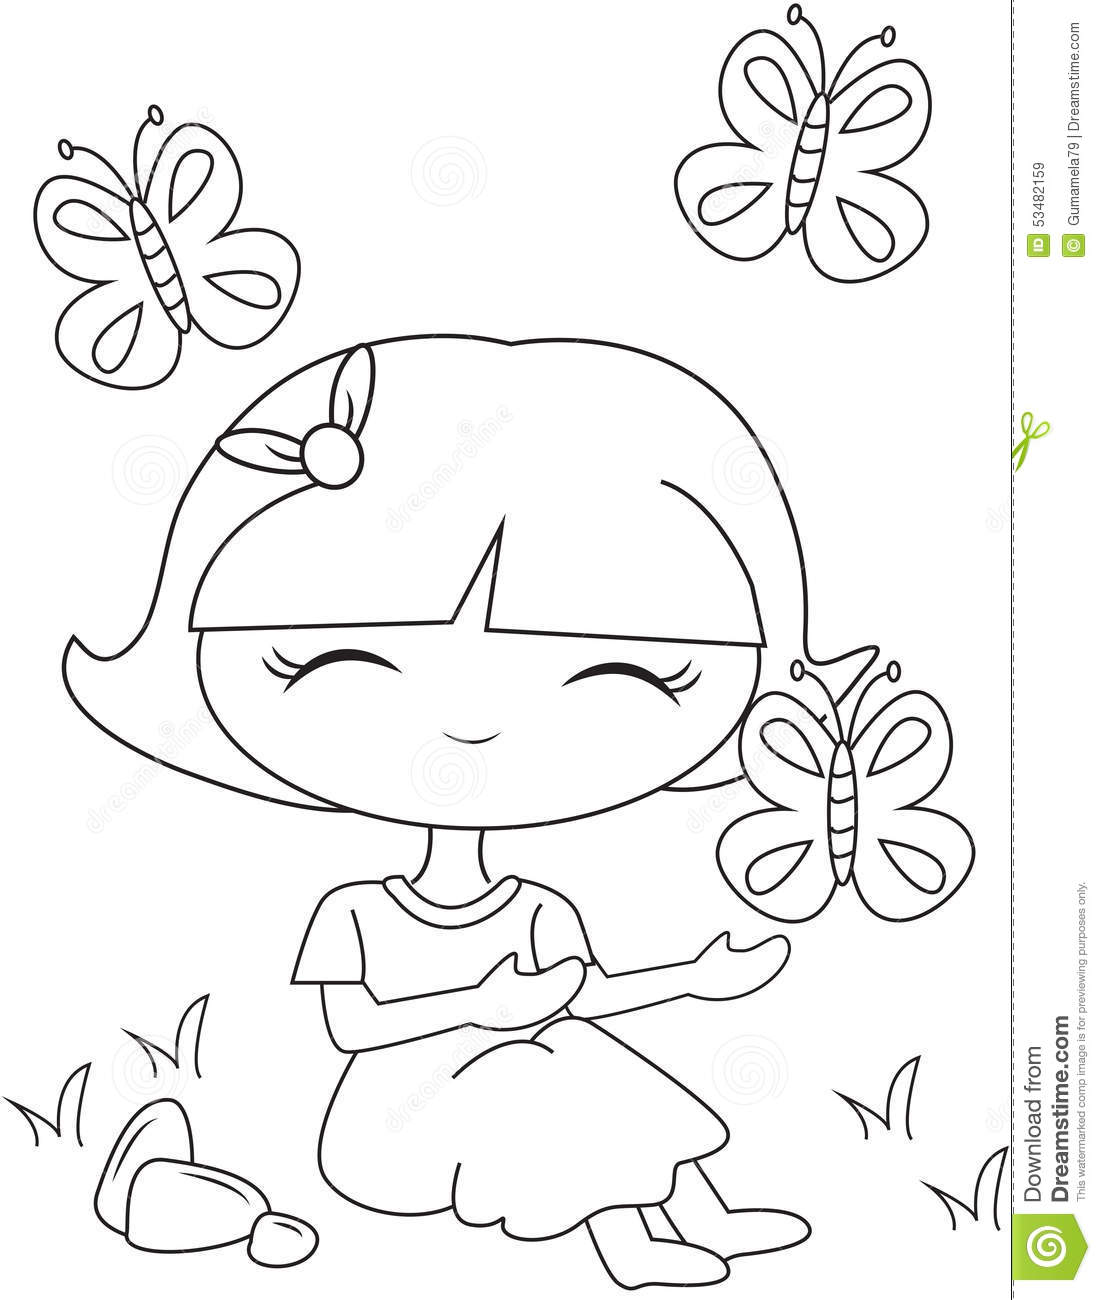 little with flying butterflies coloring page stock